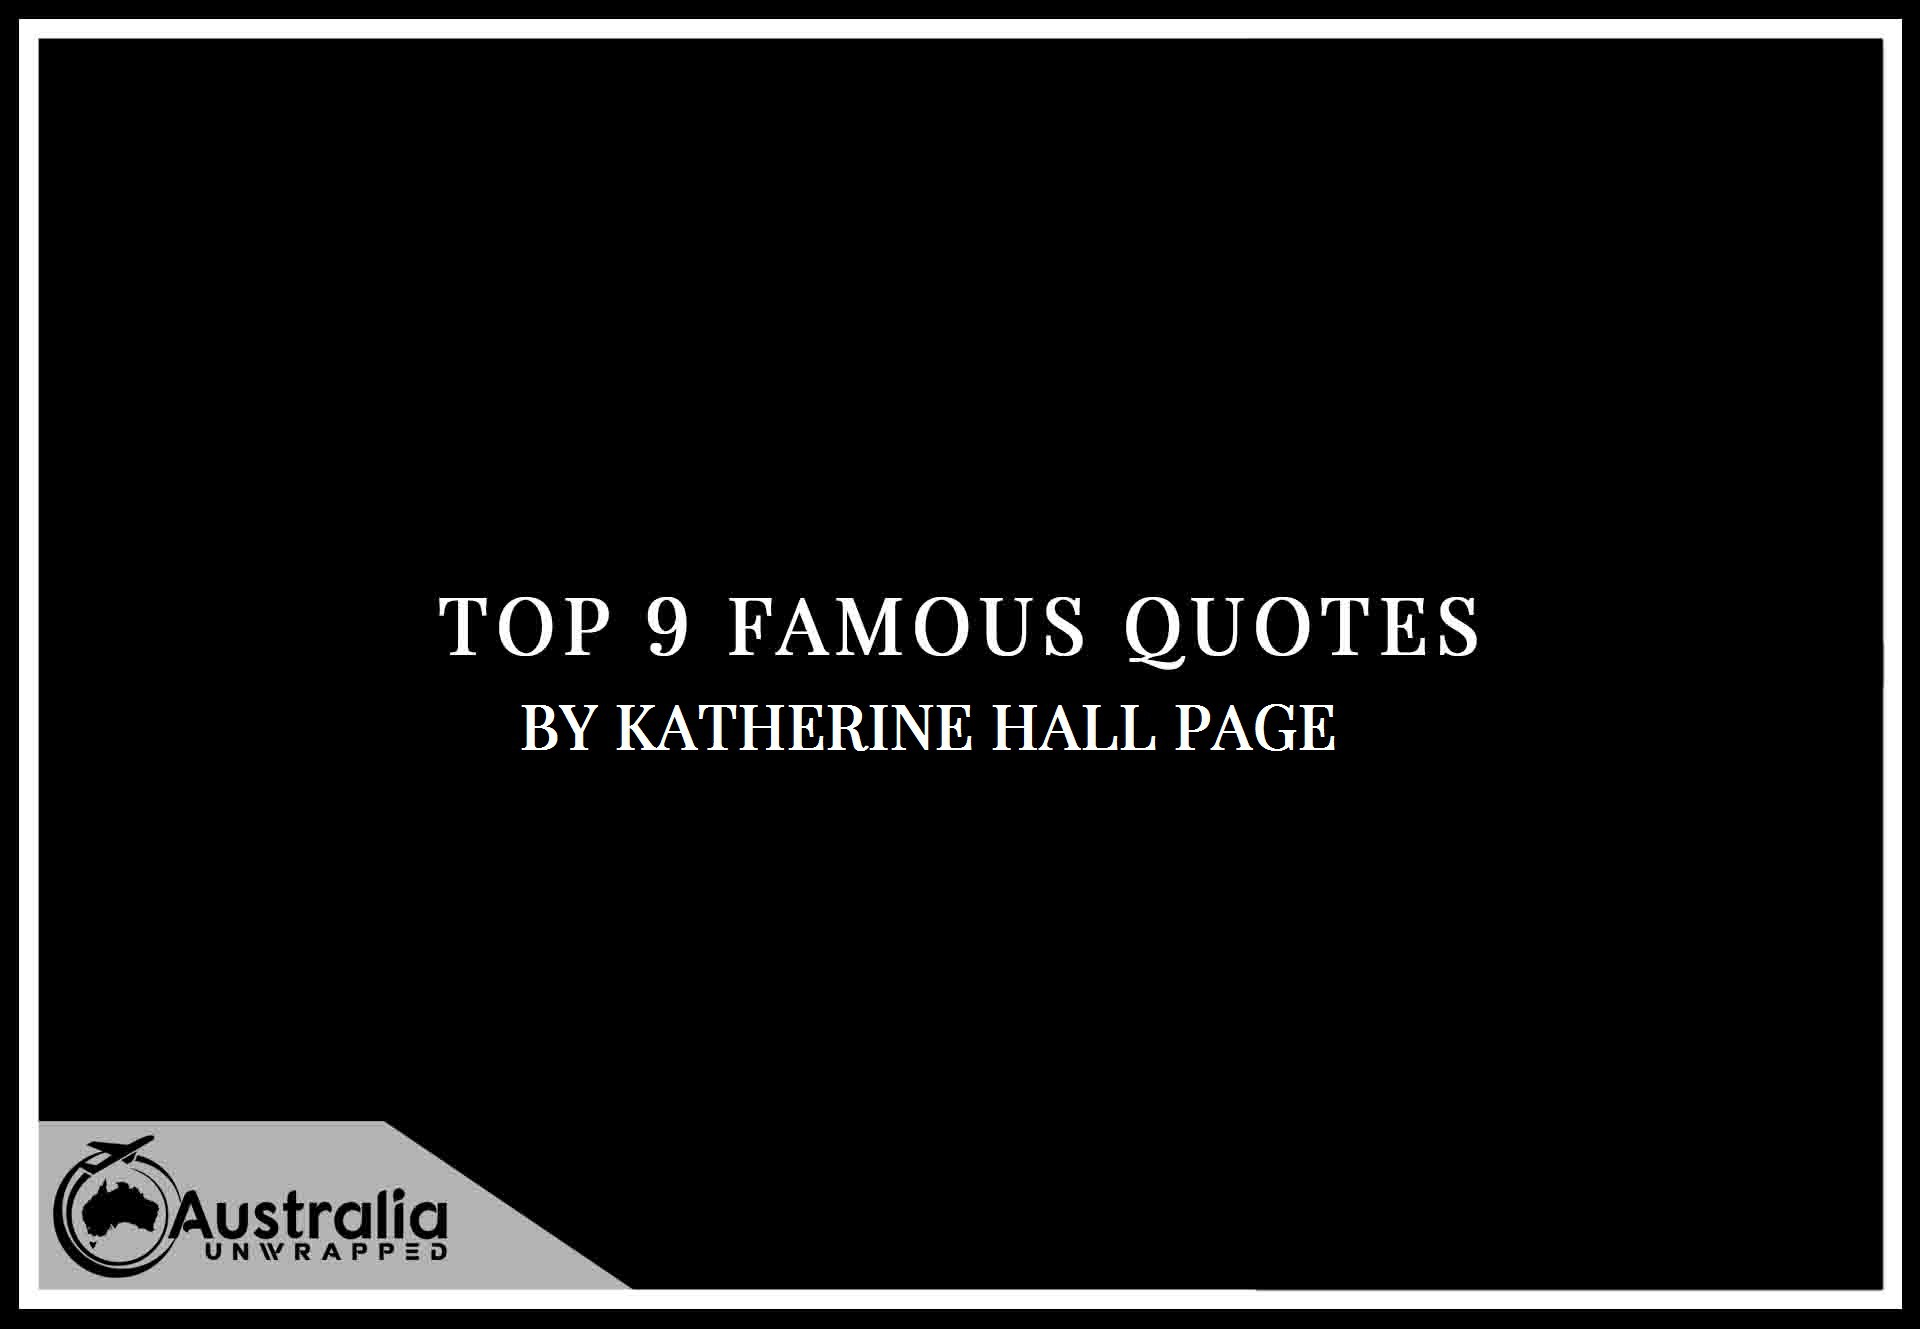 Katherine Hall Page's Top 9 Popular and Famous Quotes